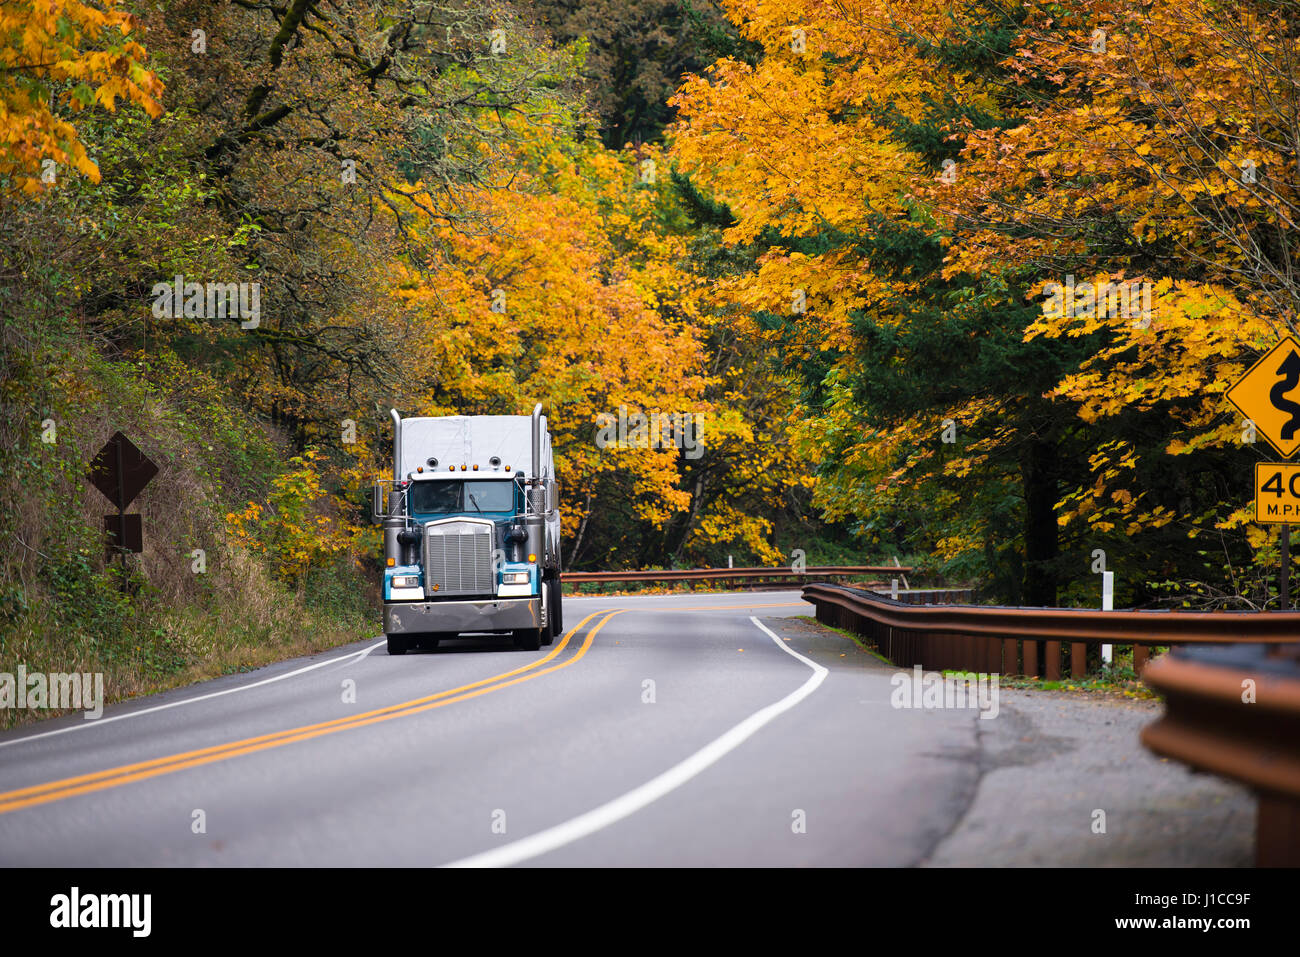 Large cool classic semi truck with chrome accents and high tailpipes and a trailer on a scenic road with twists, - Stock Image